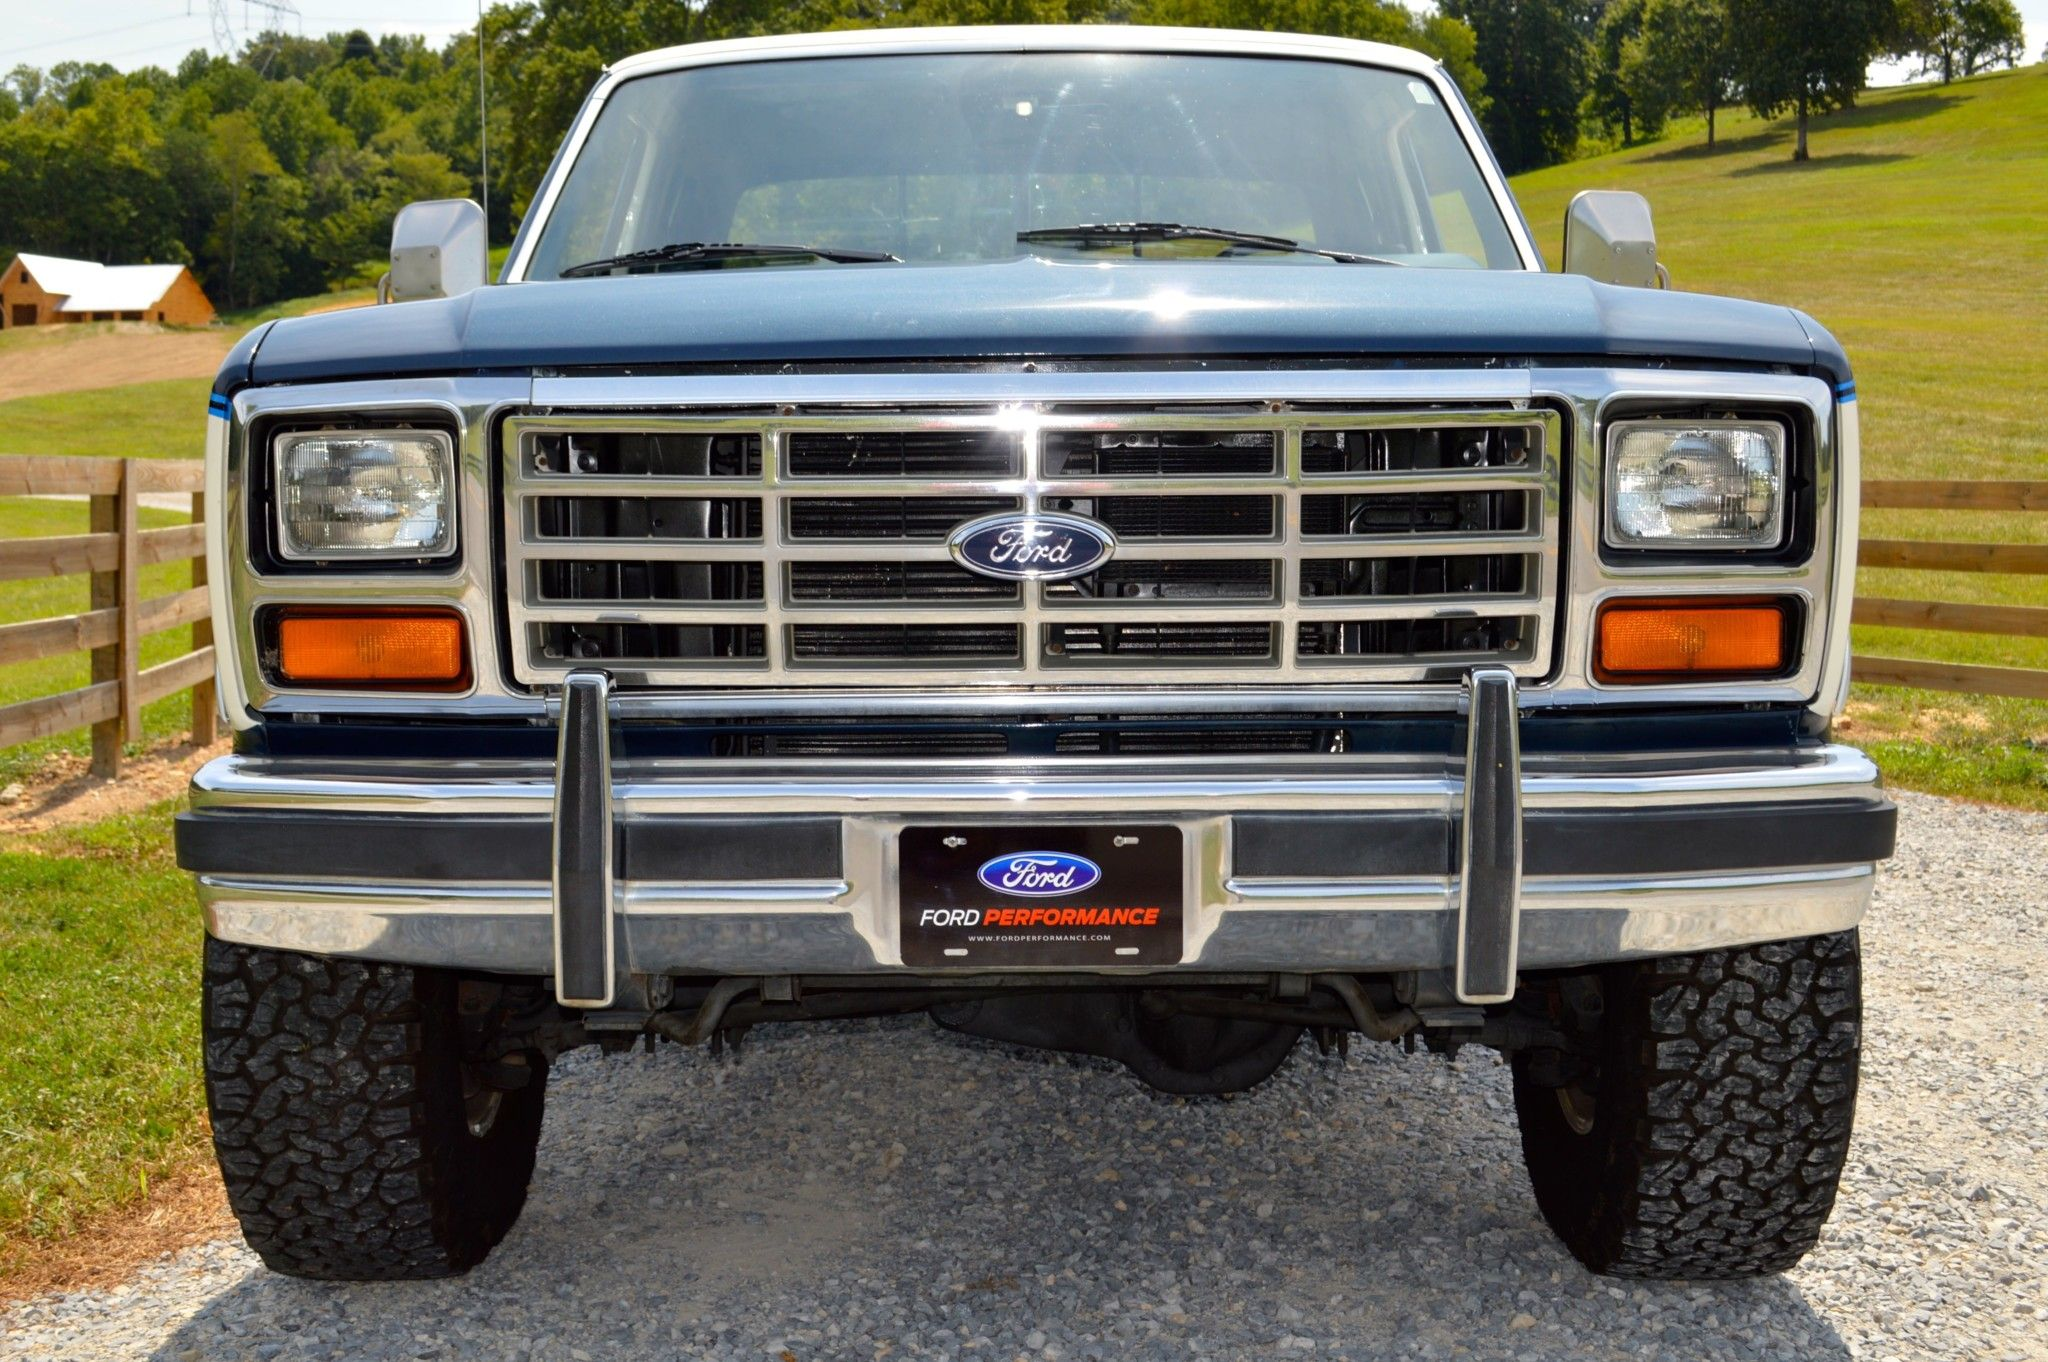 1986 Ford F 250 Xlt Lariat Supercab 4x4 4 Speed Ford Trucks 79 Ford Truck Lifted Ford Trucks